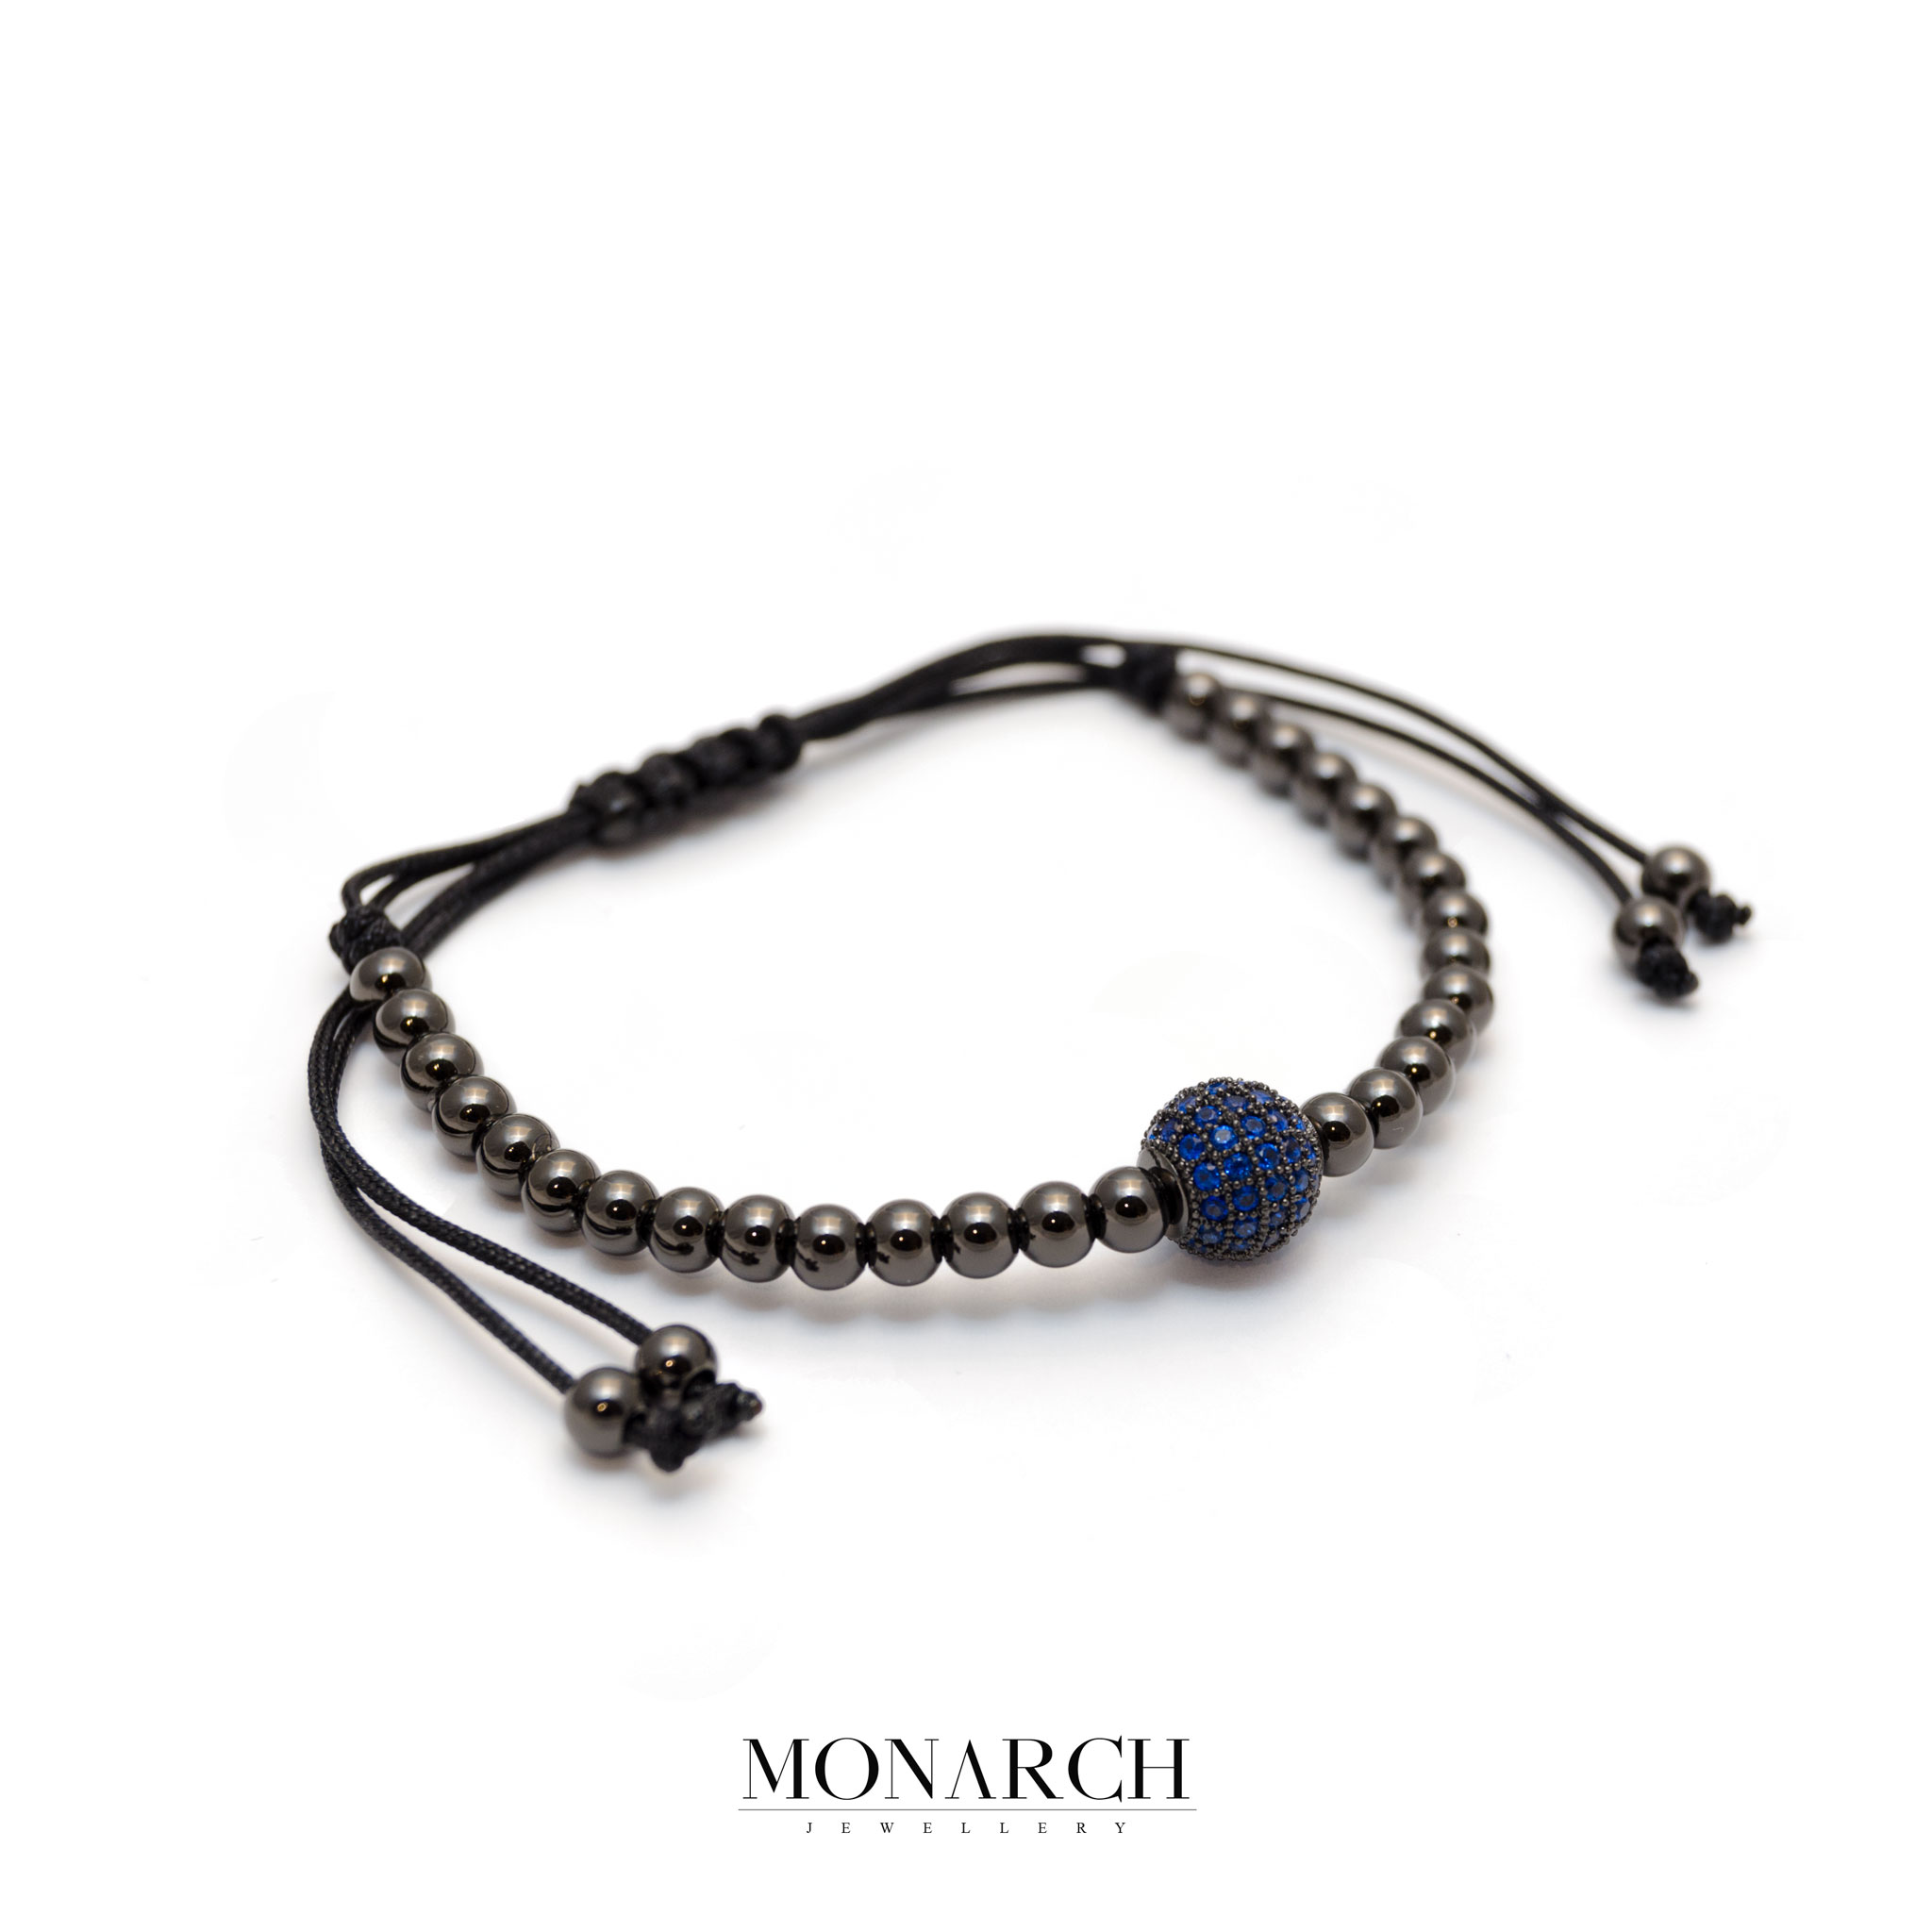 Monarch Jewellery Black Azur Solo Bead Macrame Bracelet